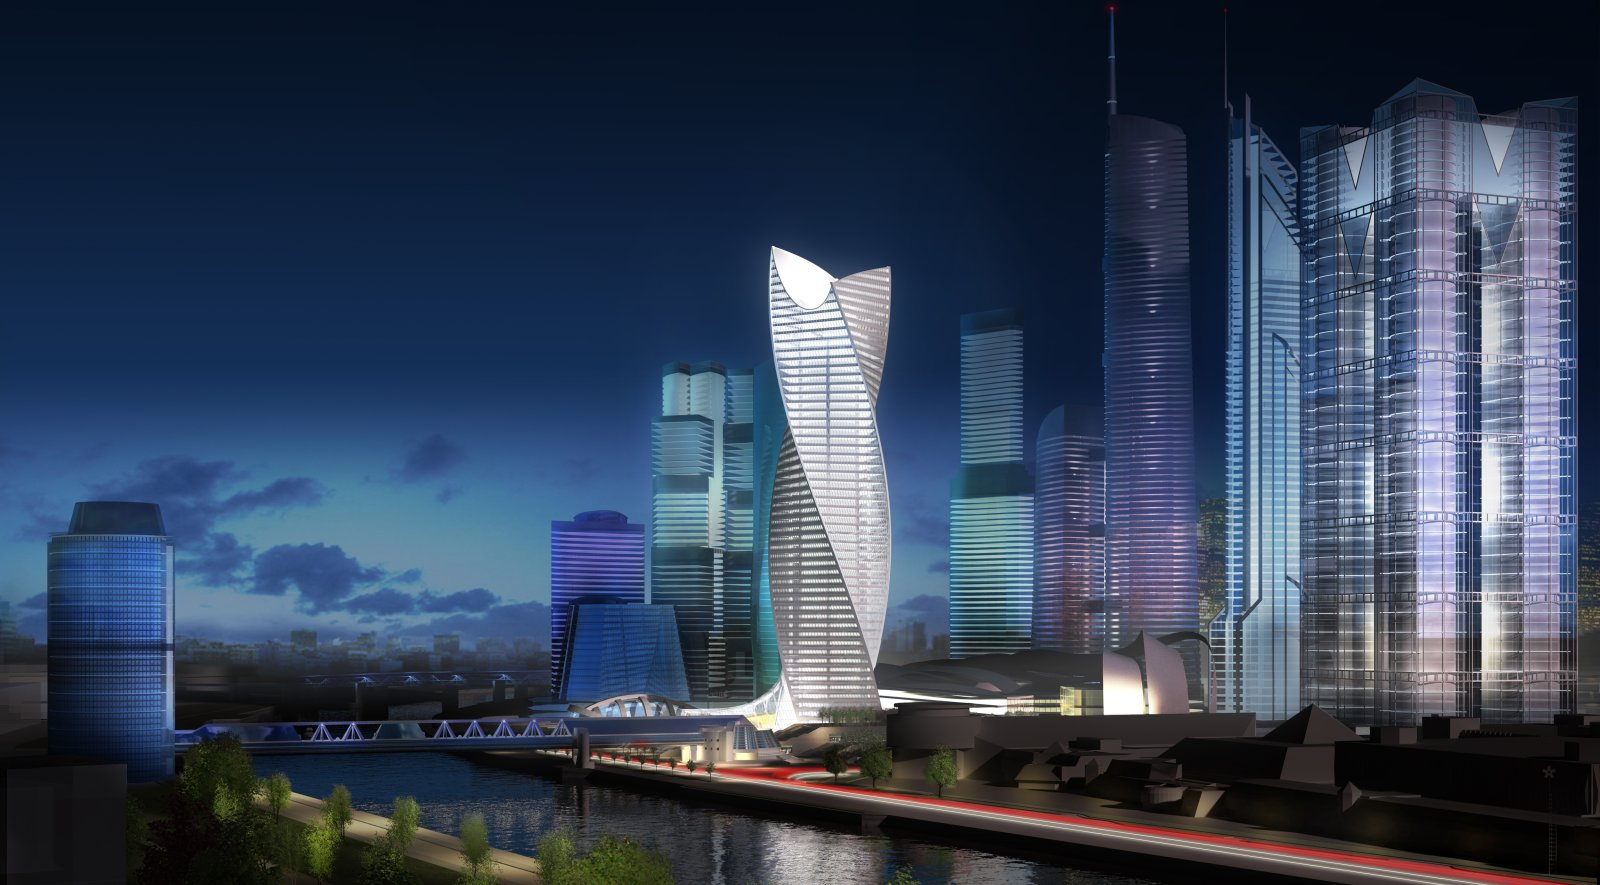 Evolution tower finalist for the best tall building in for Architecture evolutive